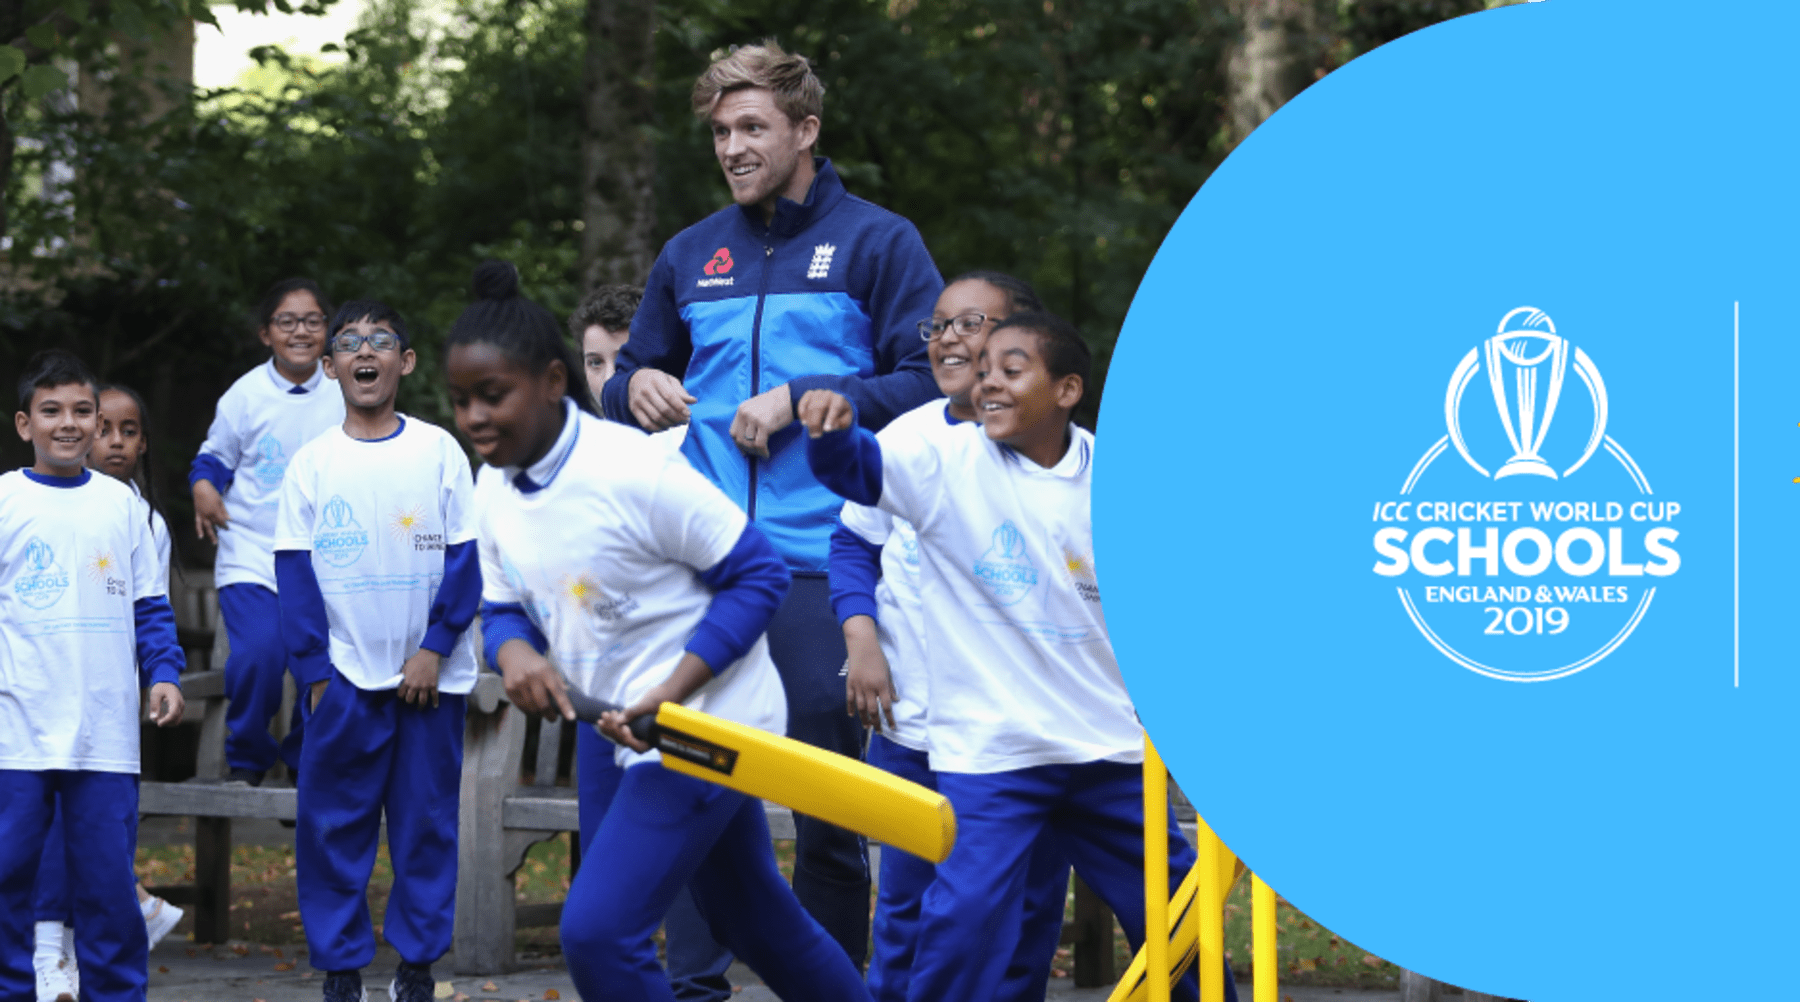 Cricket World Cup and Chance to Shine to engage schools across the country